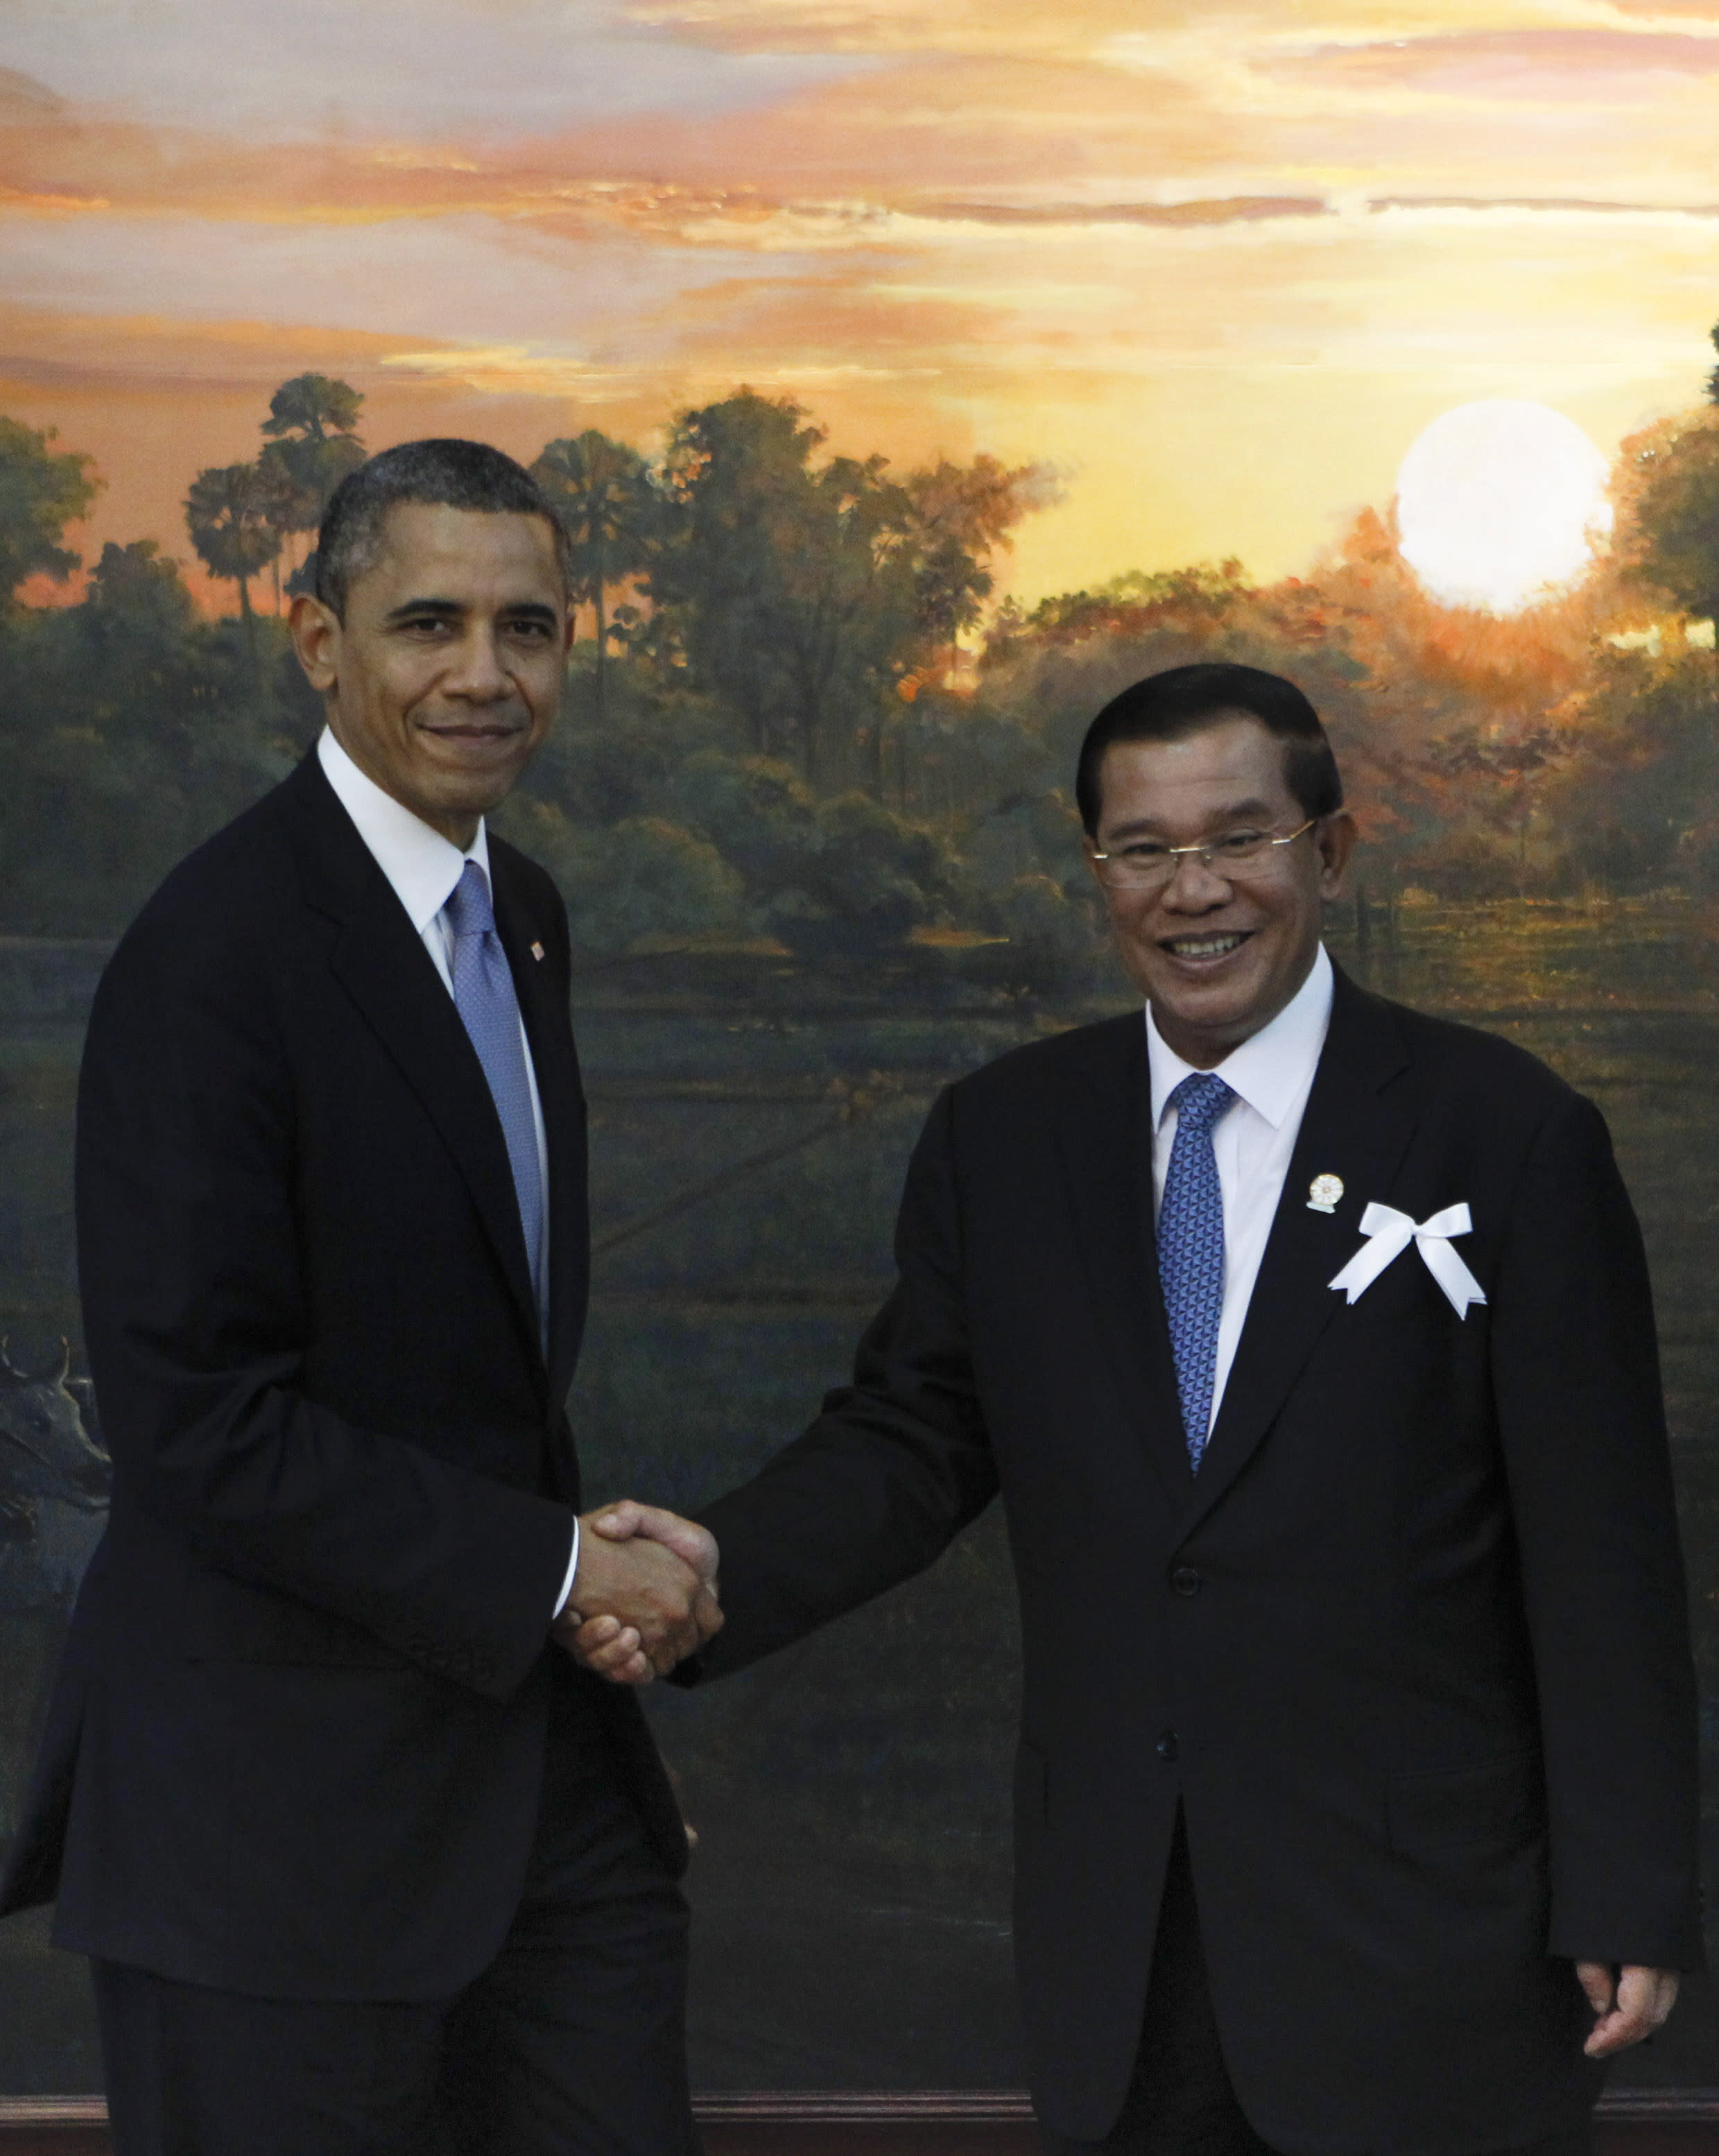 U.S. President Barack Obama, left, poses with Cambodia's Prime Minister Hun Sen for photographers before the ASEAN-U.S. leaders meeting in Phnom Penh, Cambodia, Monday, Nov. 19, 2012. (AP Photo/Vincent Thian)